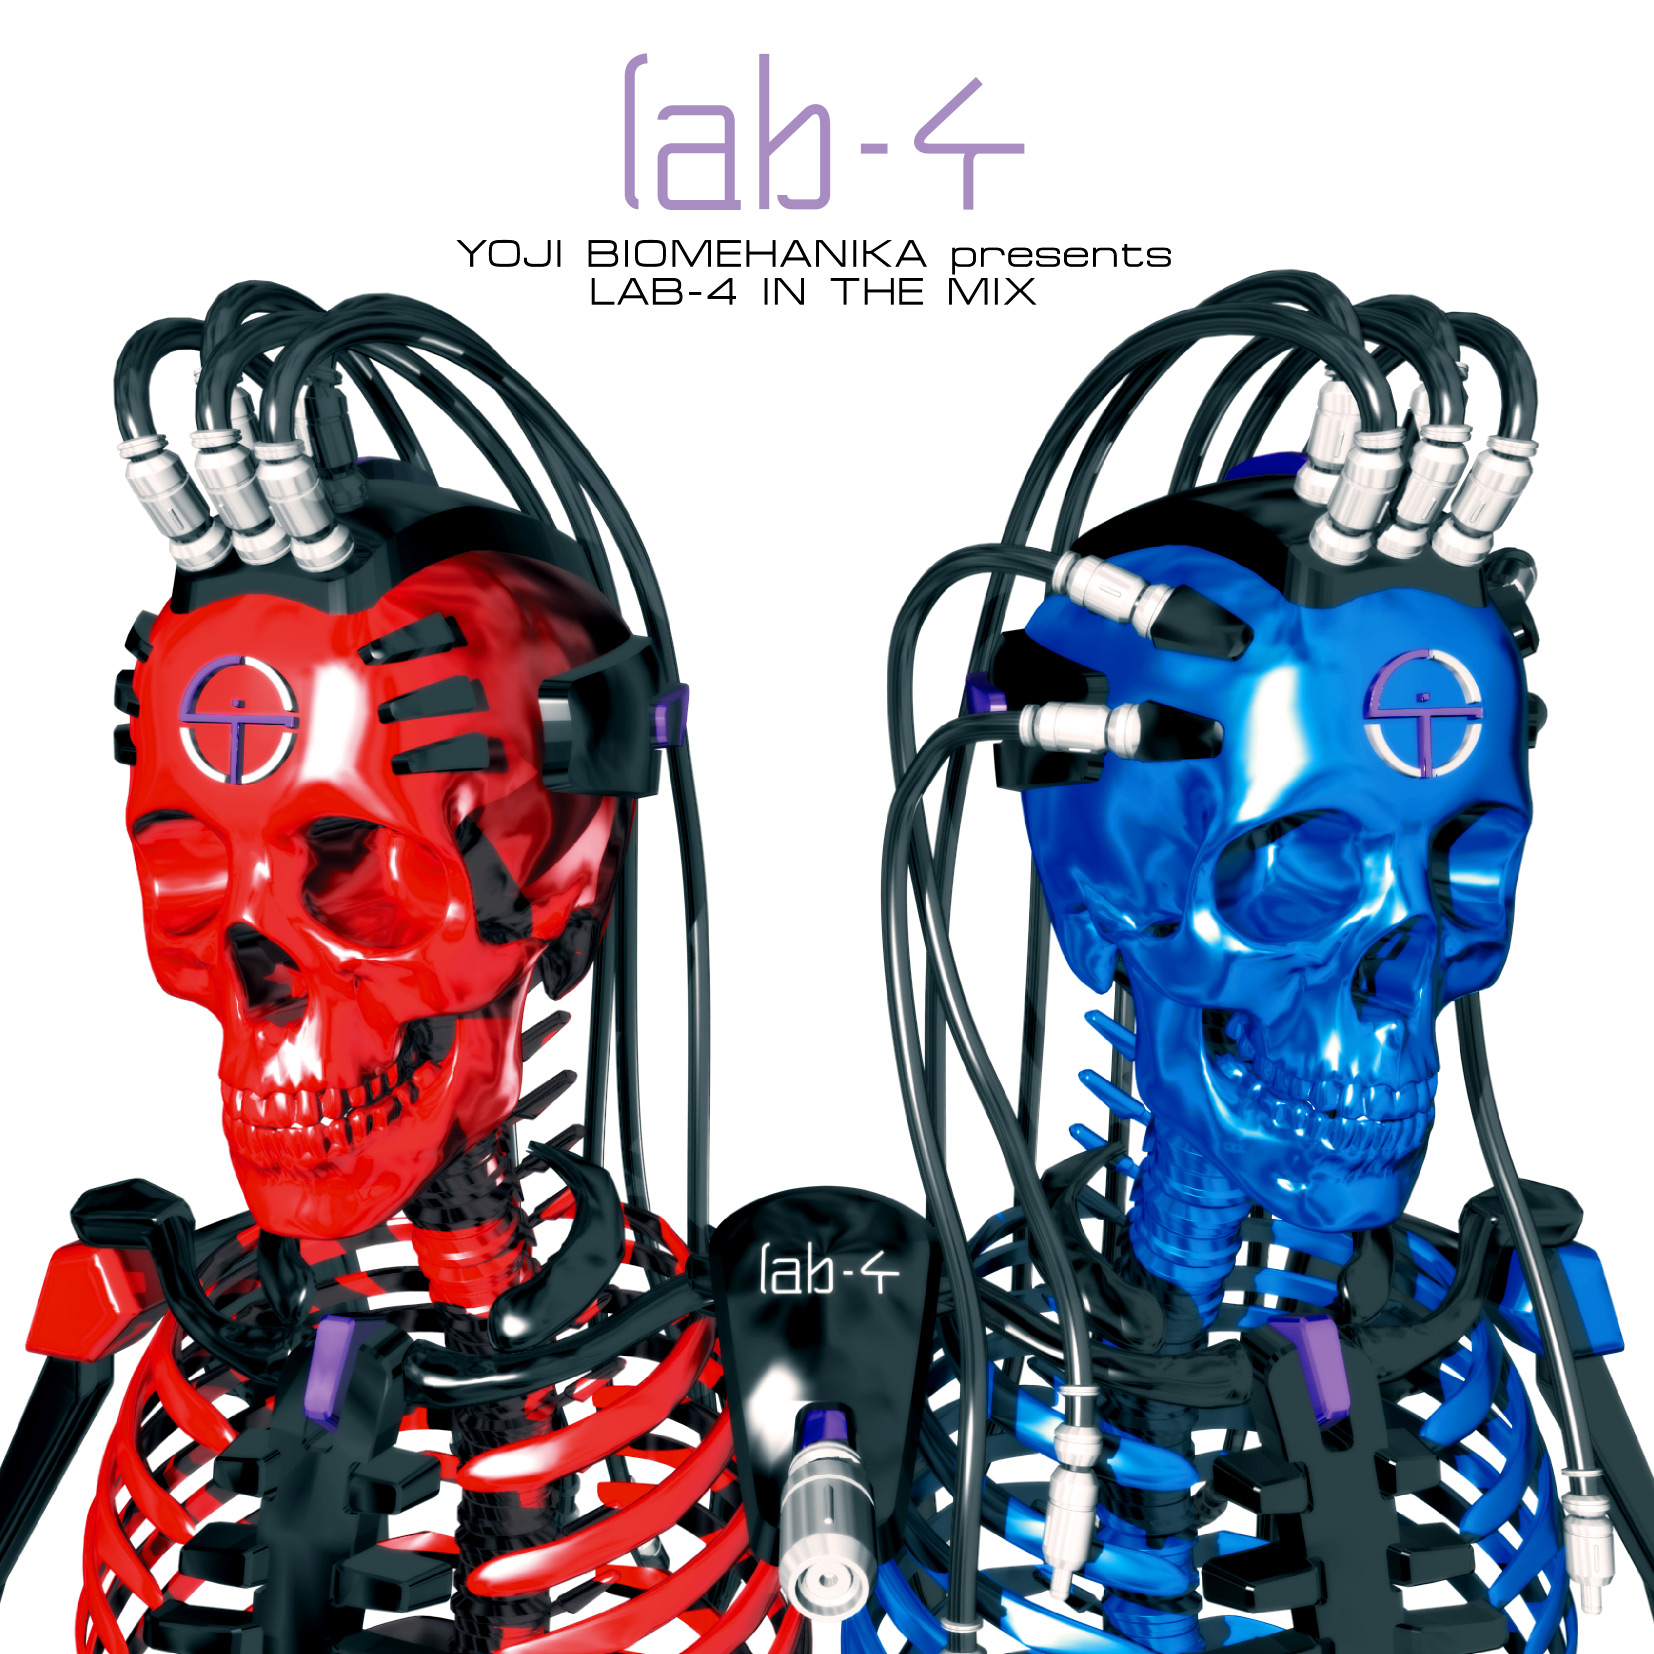 LAB-4 IN THE MIX